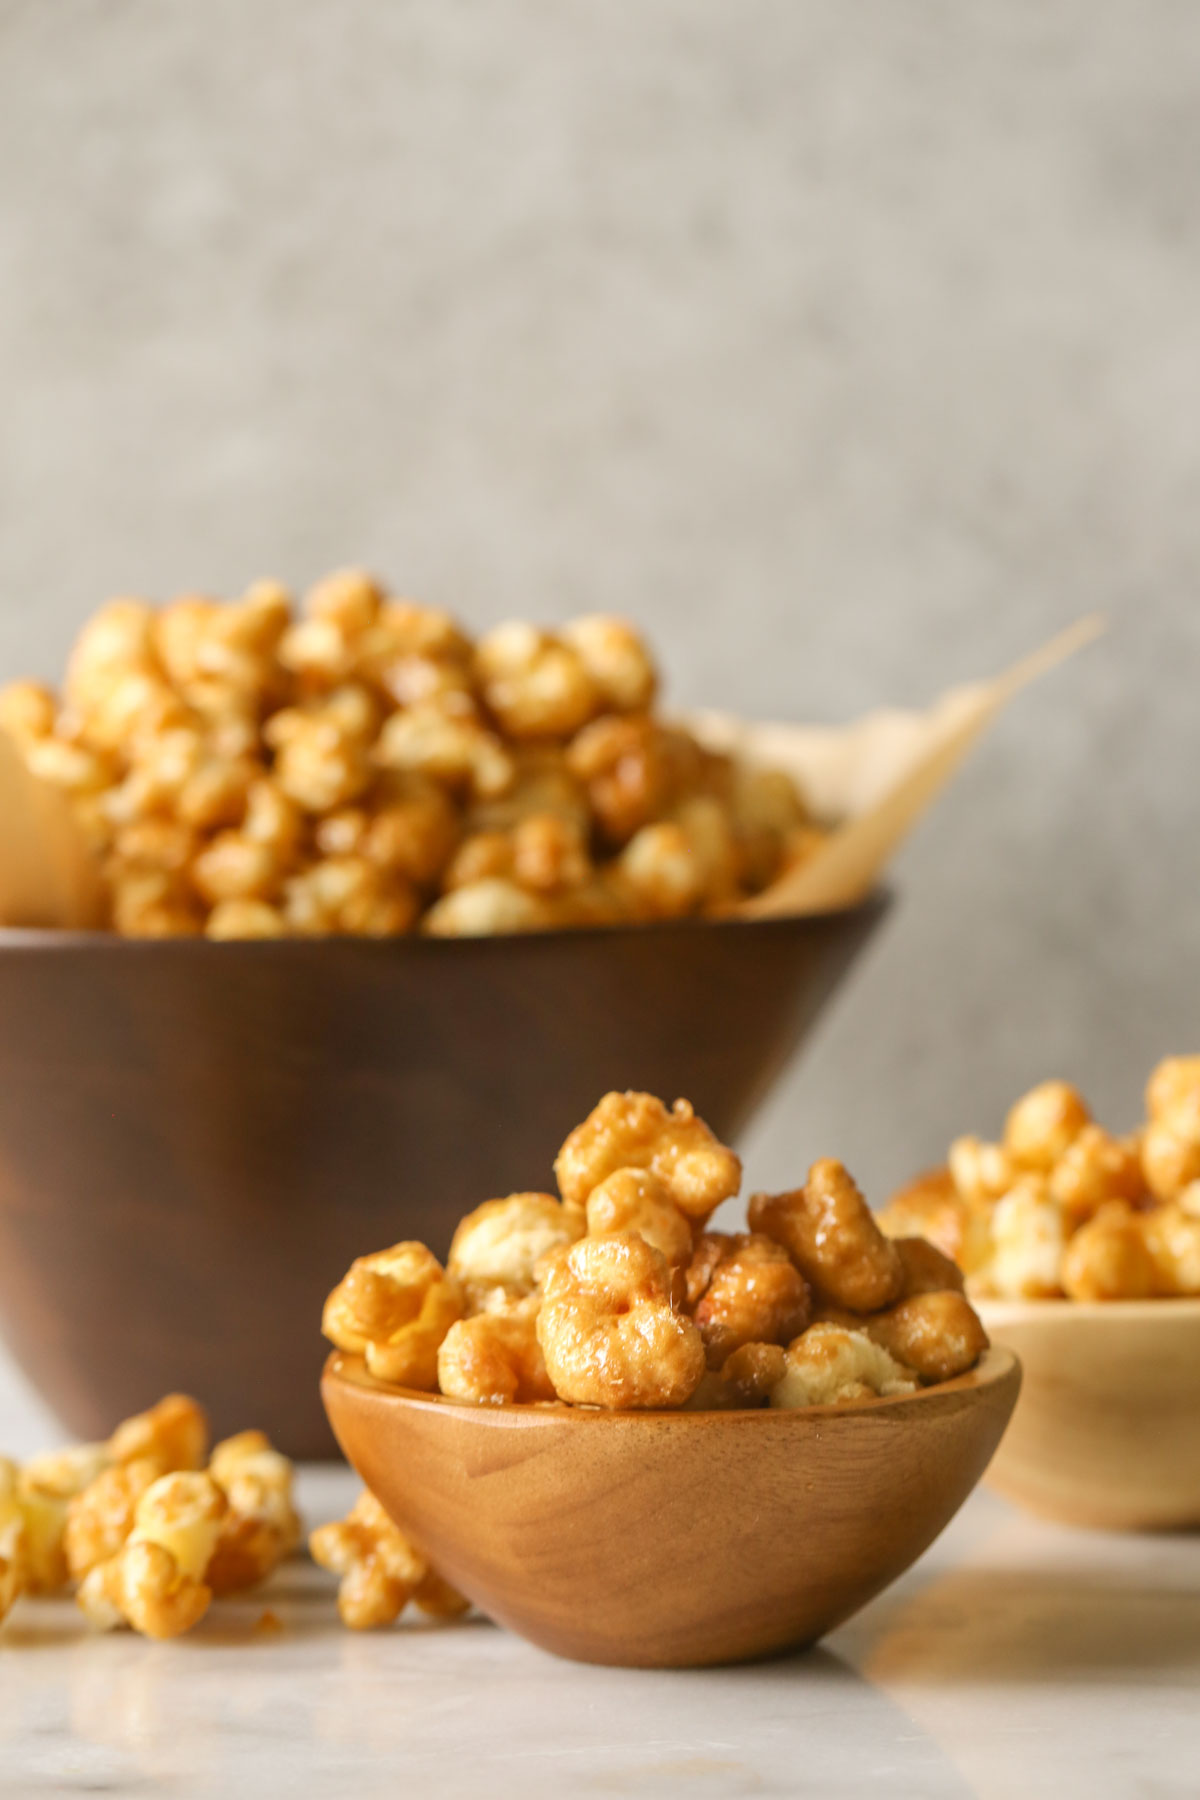 A small wood bowl of Caramel Puff Corn, with another small bowl and a large wood bowl of Caramel Puff Corn in the background.